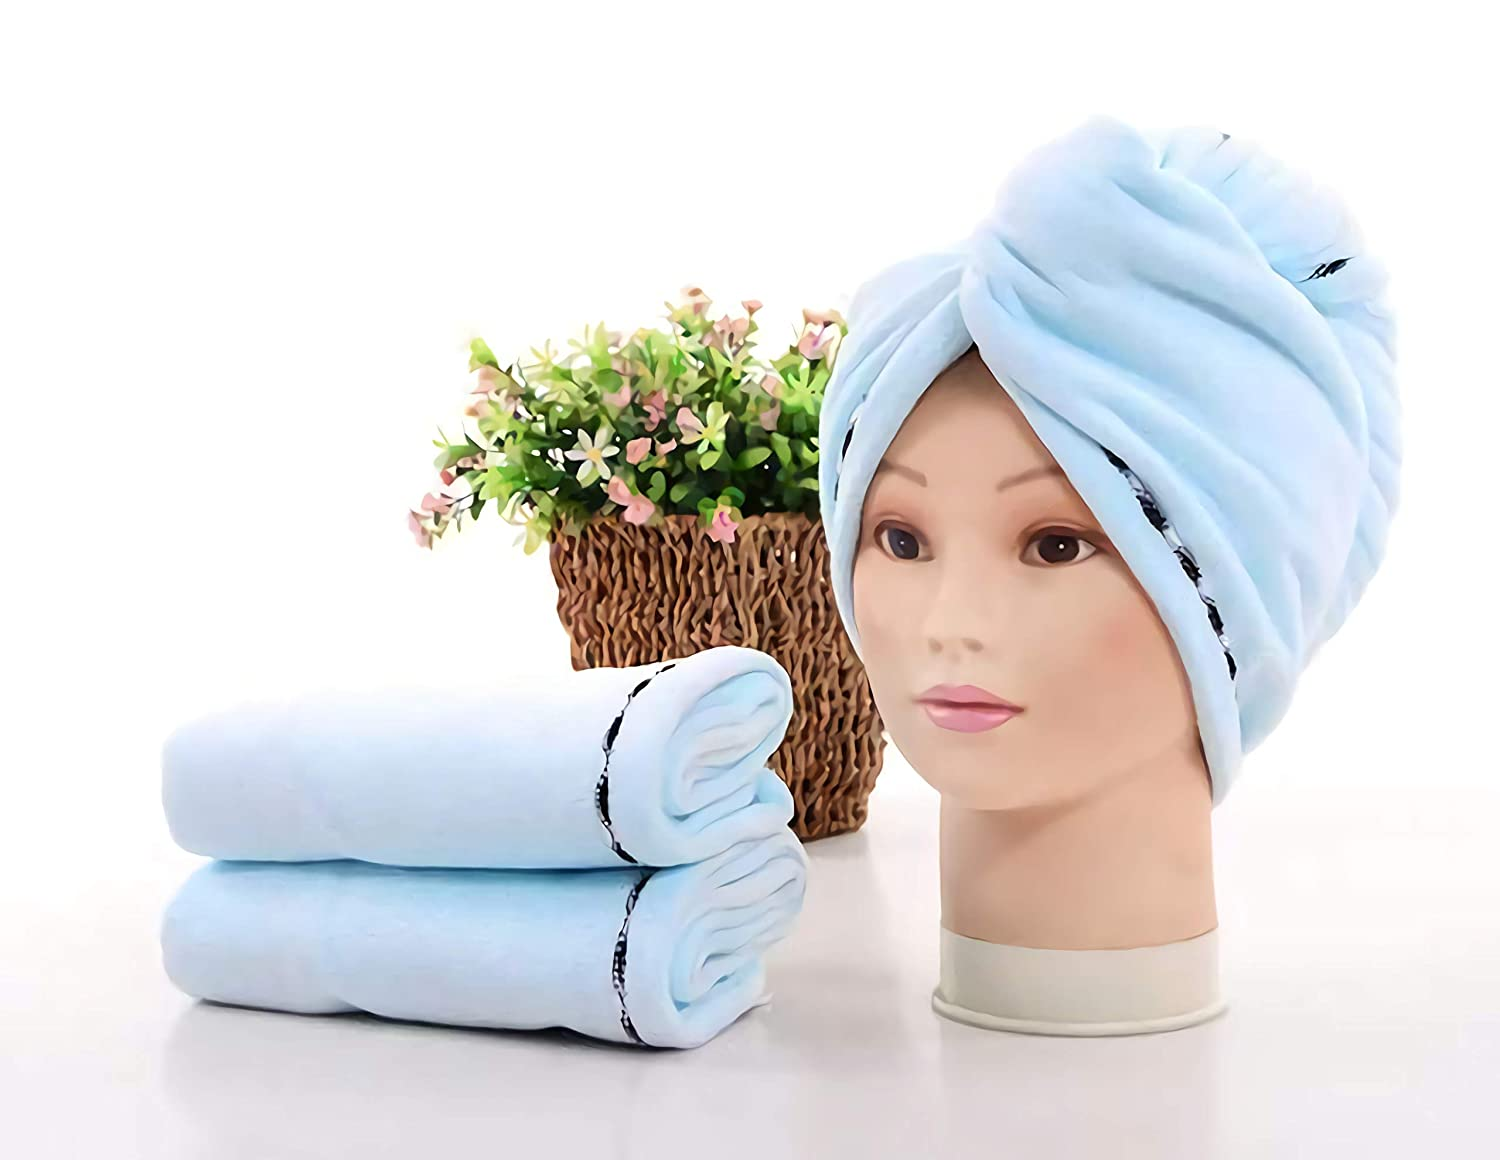 Tshirt towels Challenge the lowest price of Japan ☆ for curly sold out hair turbans wet Thick Long